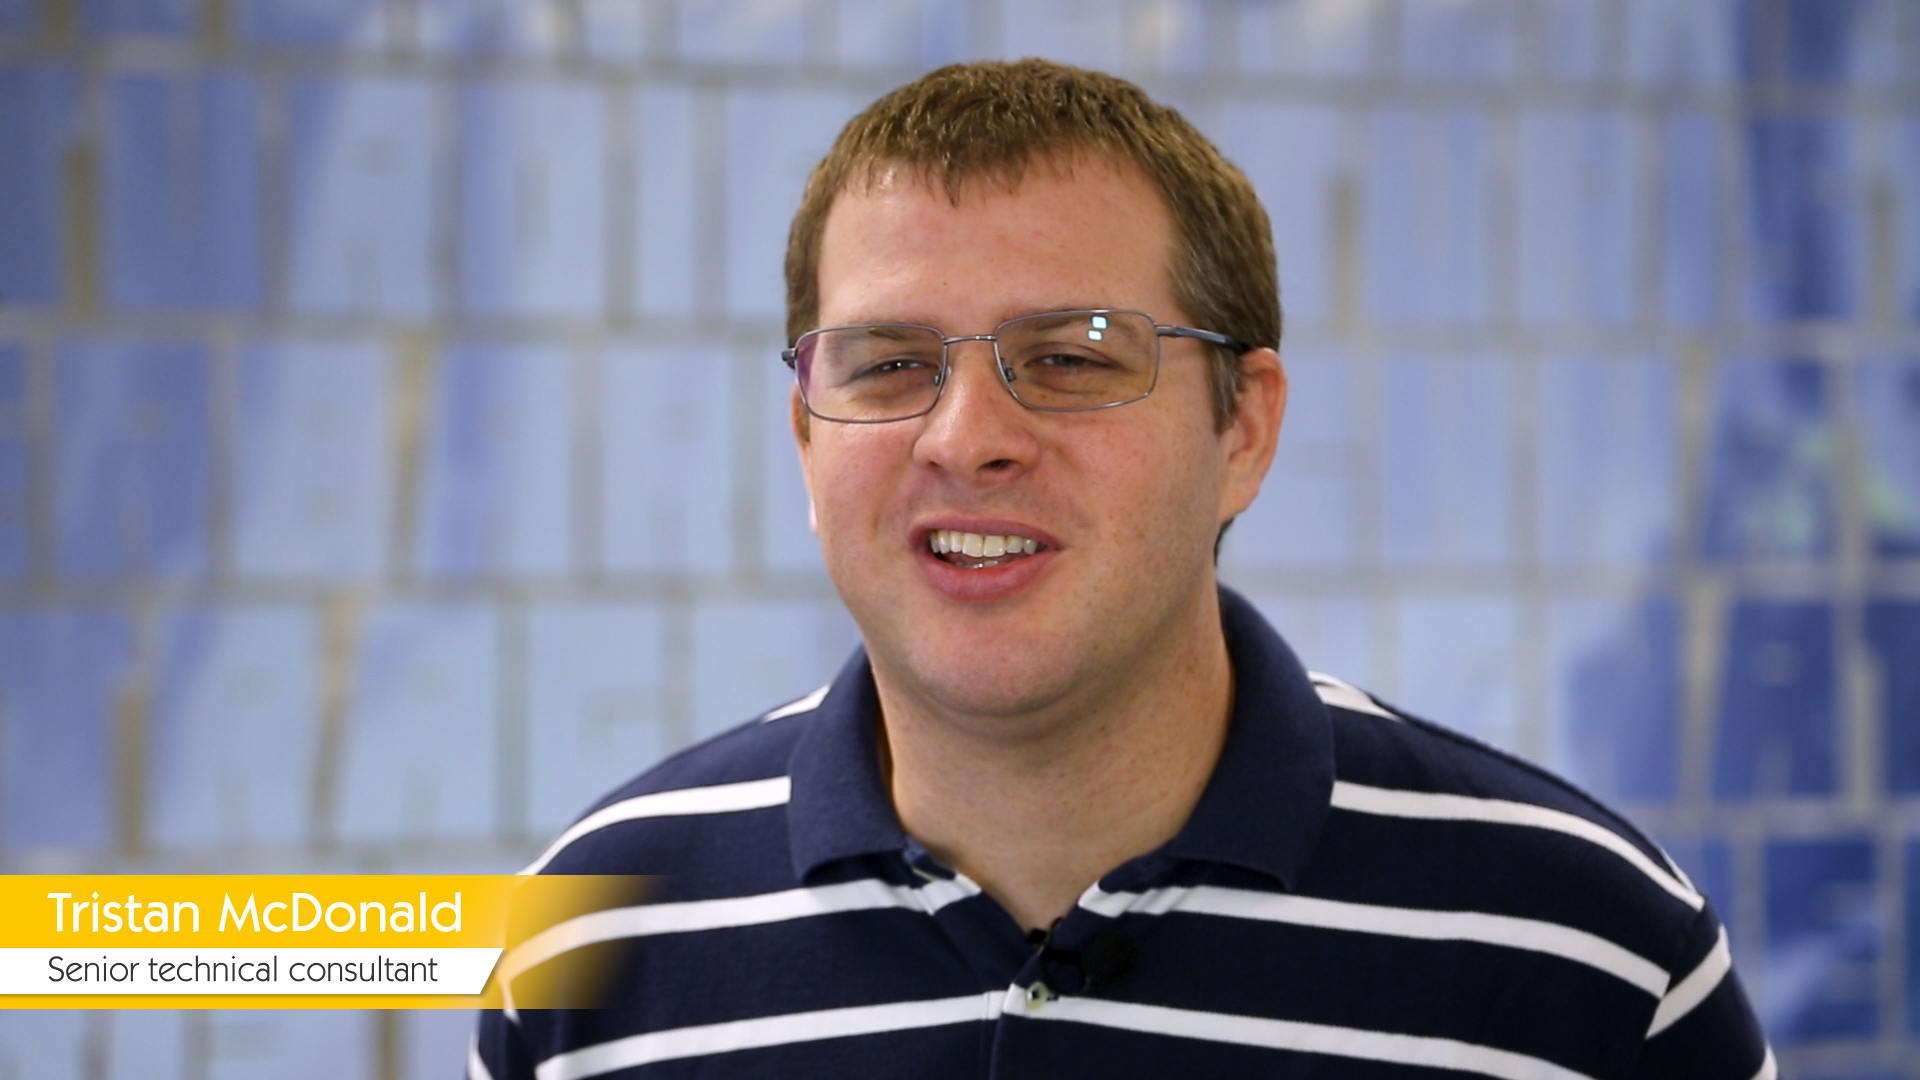 Interview-Video Tristan McDonald, Senior Technical Consultant